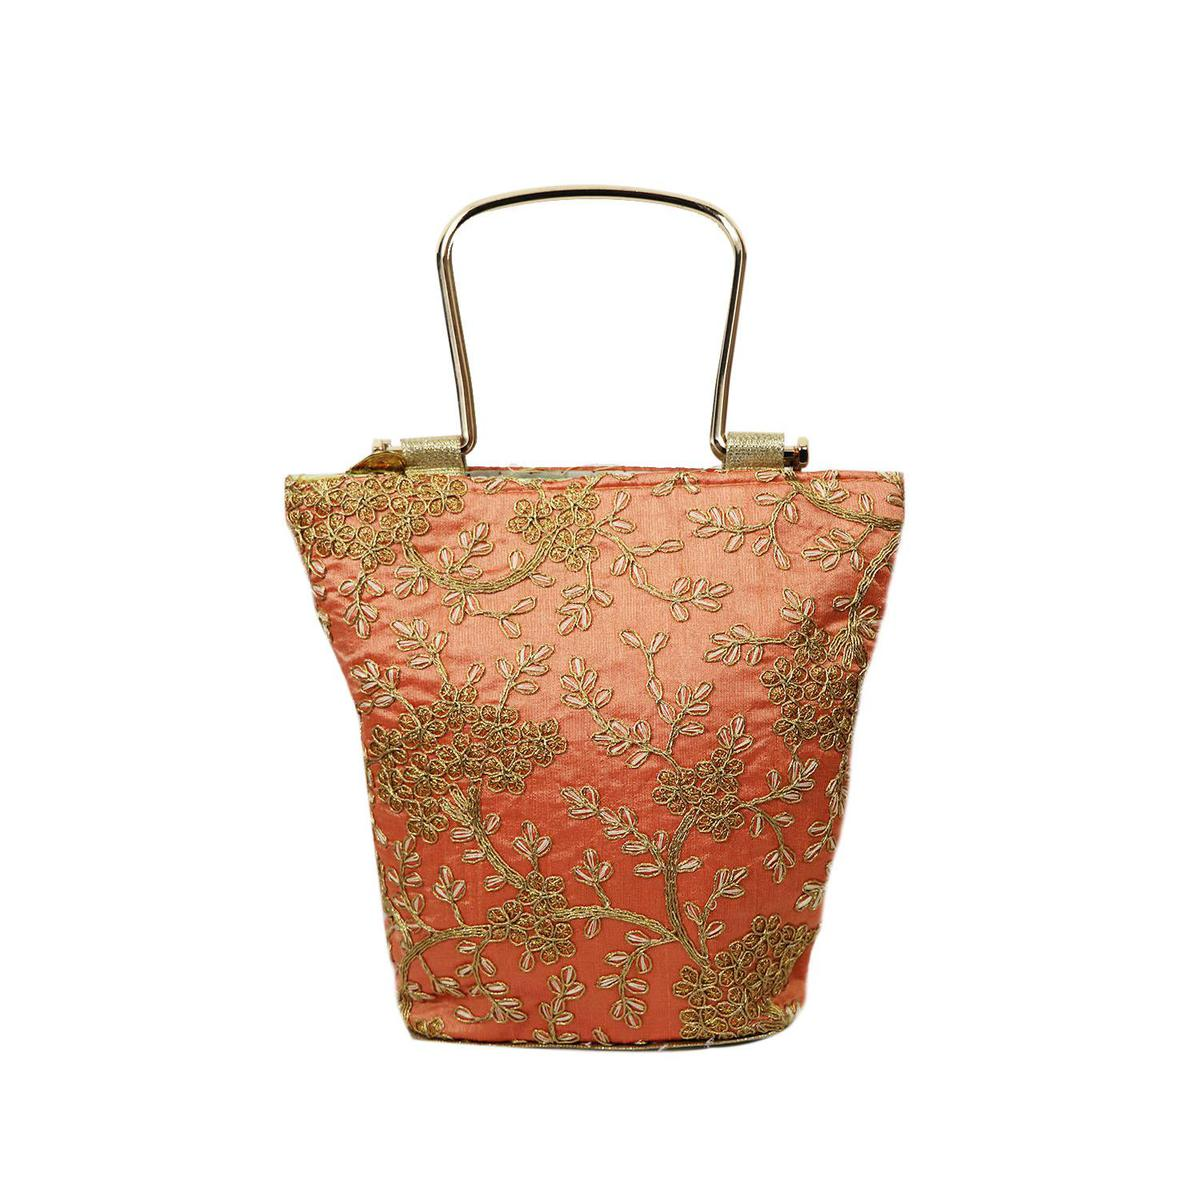 Lelys - Handcrafted Ethnic Party Wear Hand Bags For Women/Girls - Peach